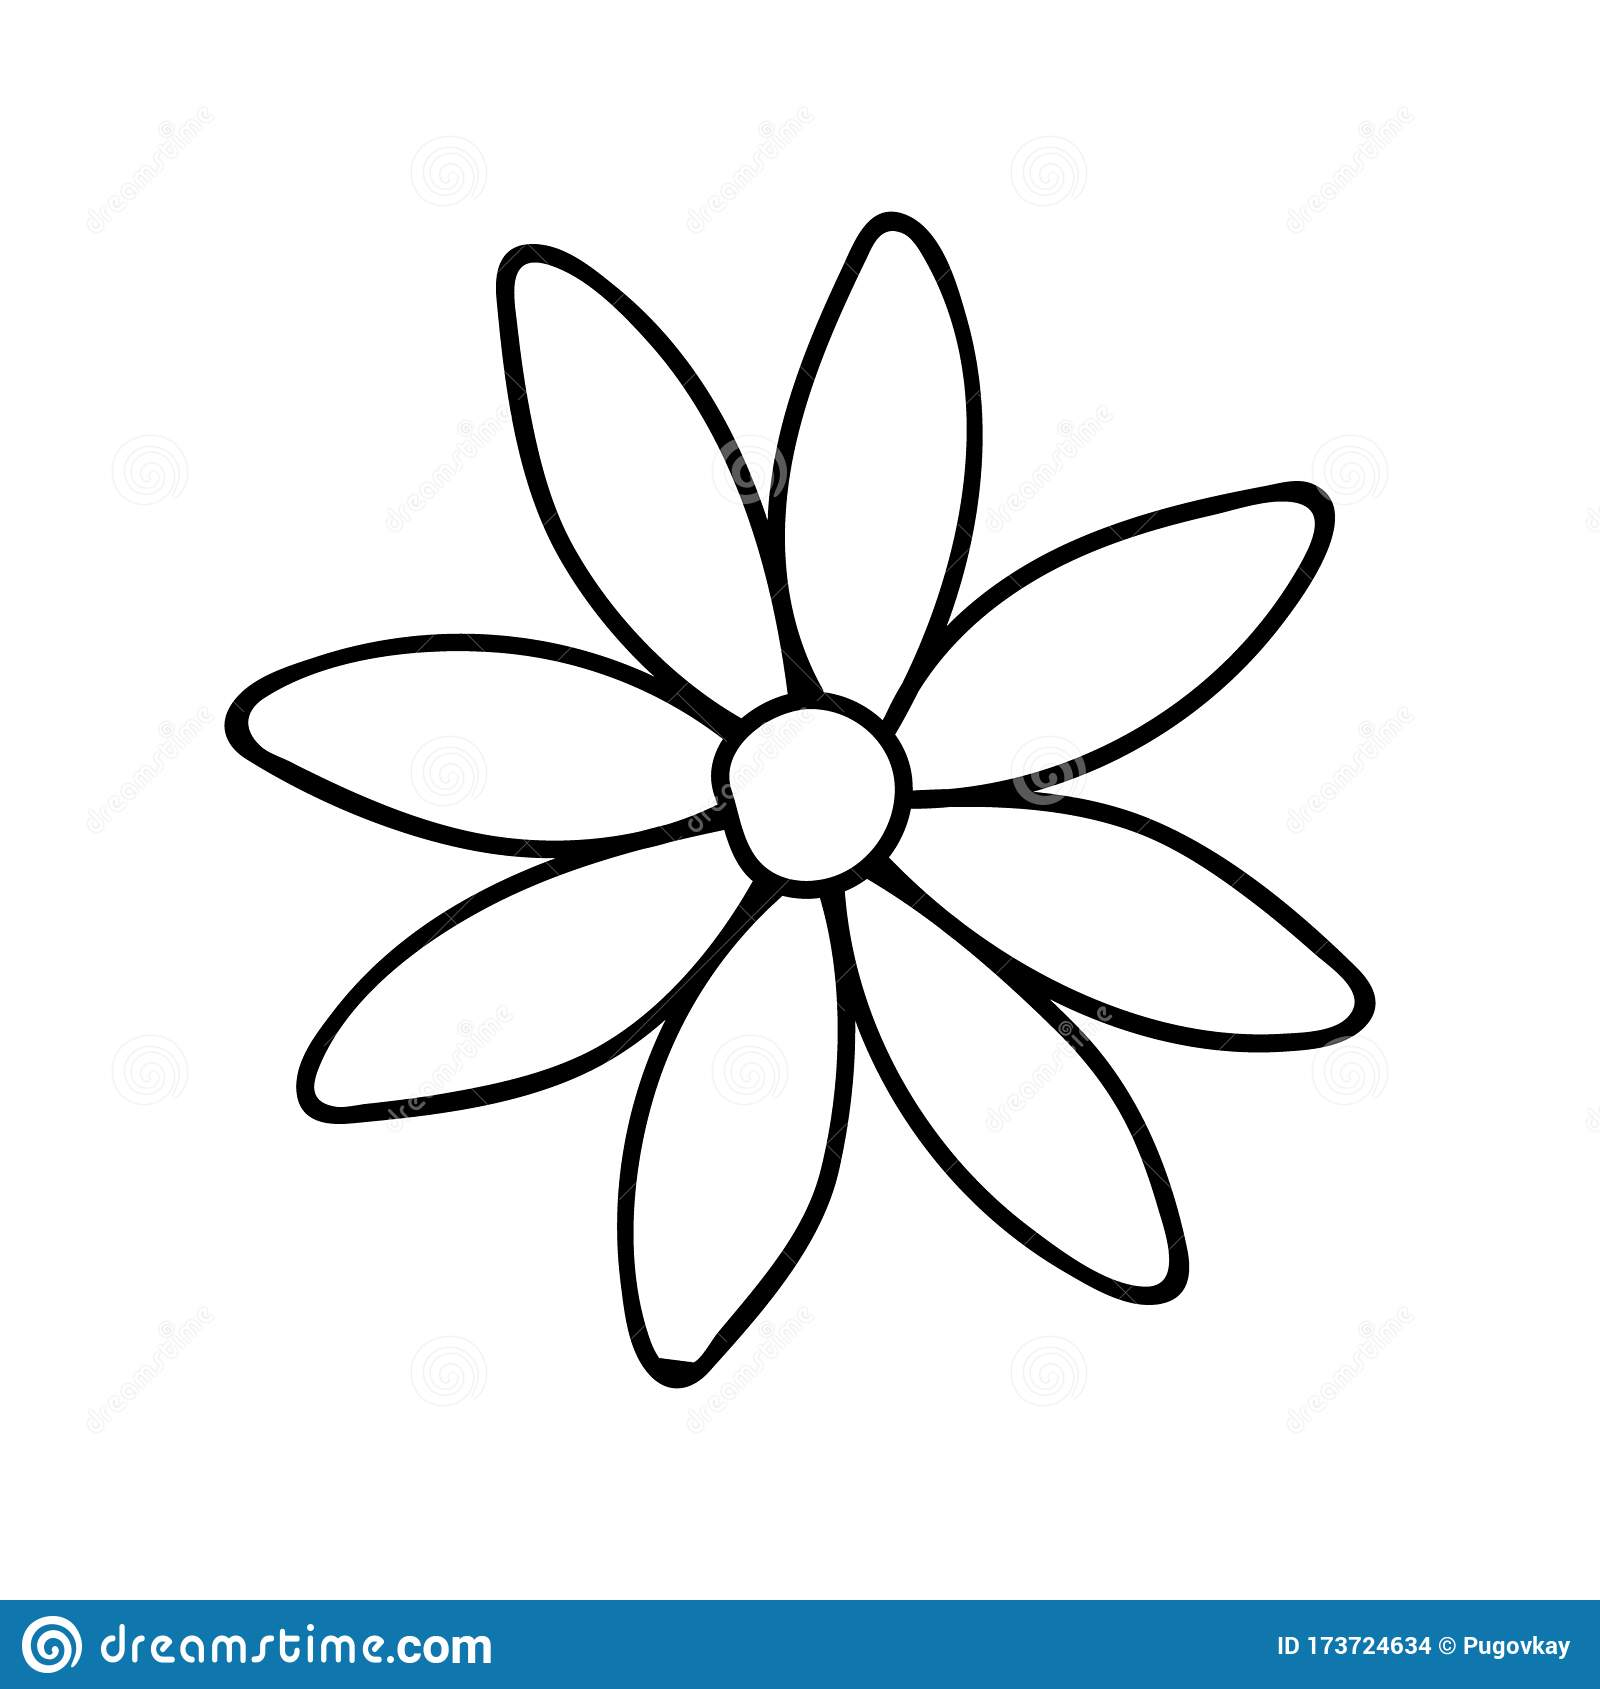 Daisy Camomile Doodle Illustration Black And White Image Contour Drawing Flower Image Isolated Flower On A White Background Stock Vector Illustration Of Decorative Black 173724634